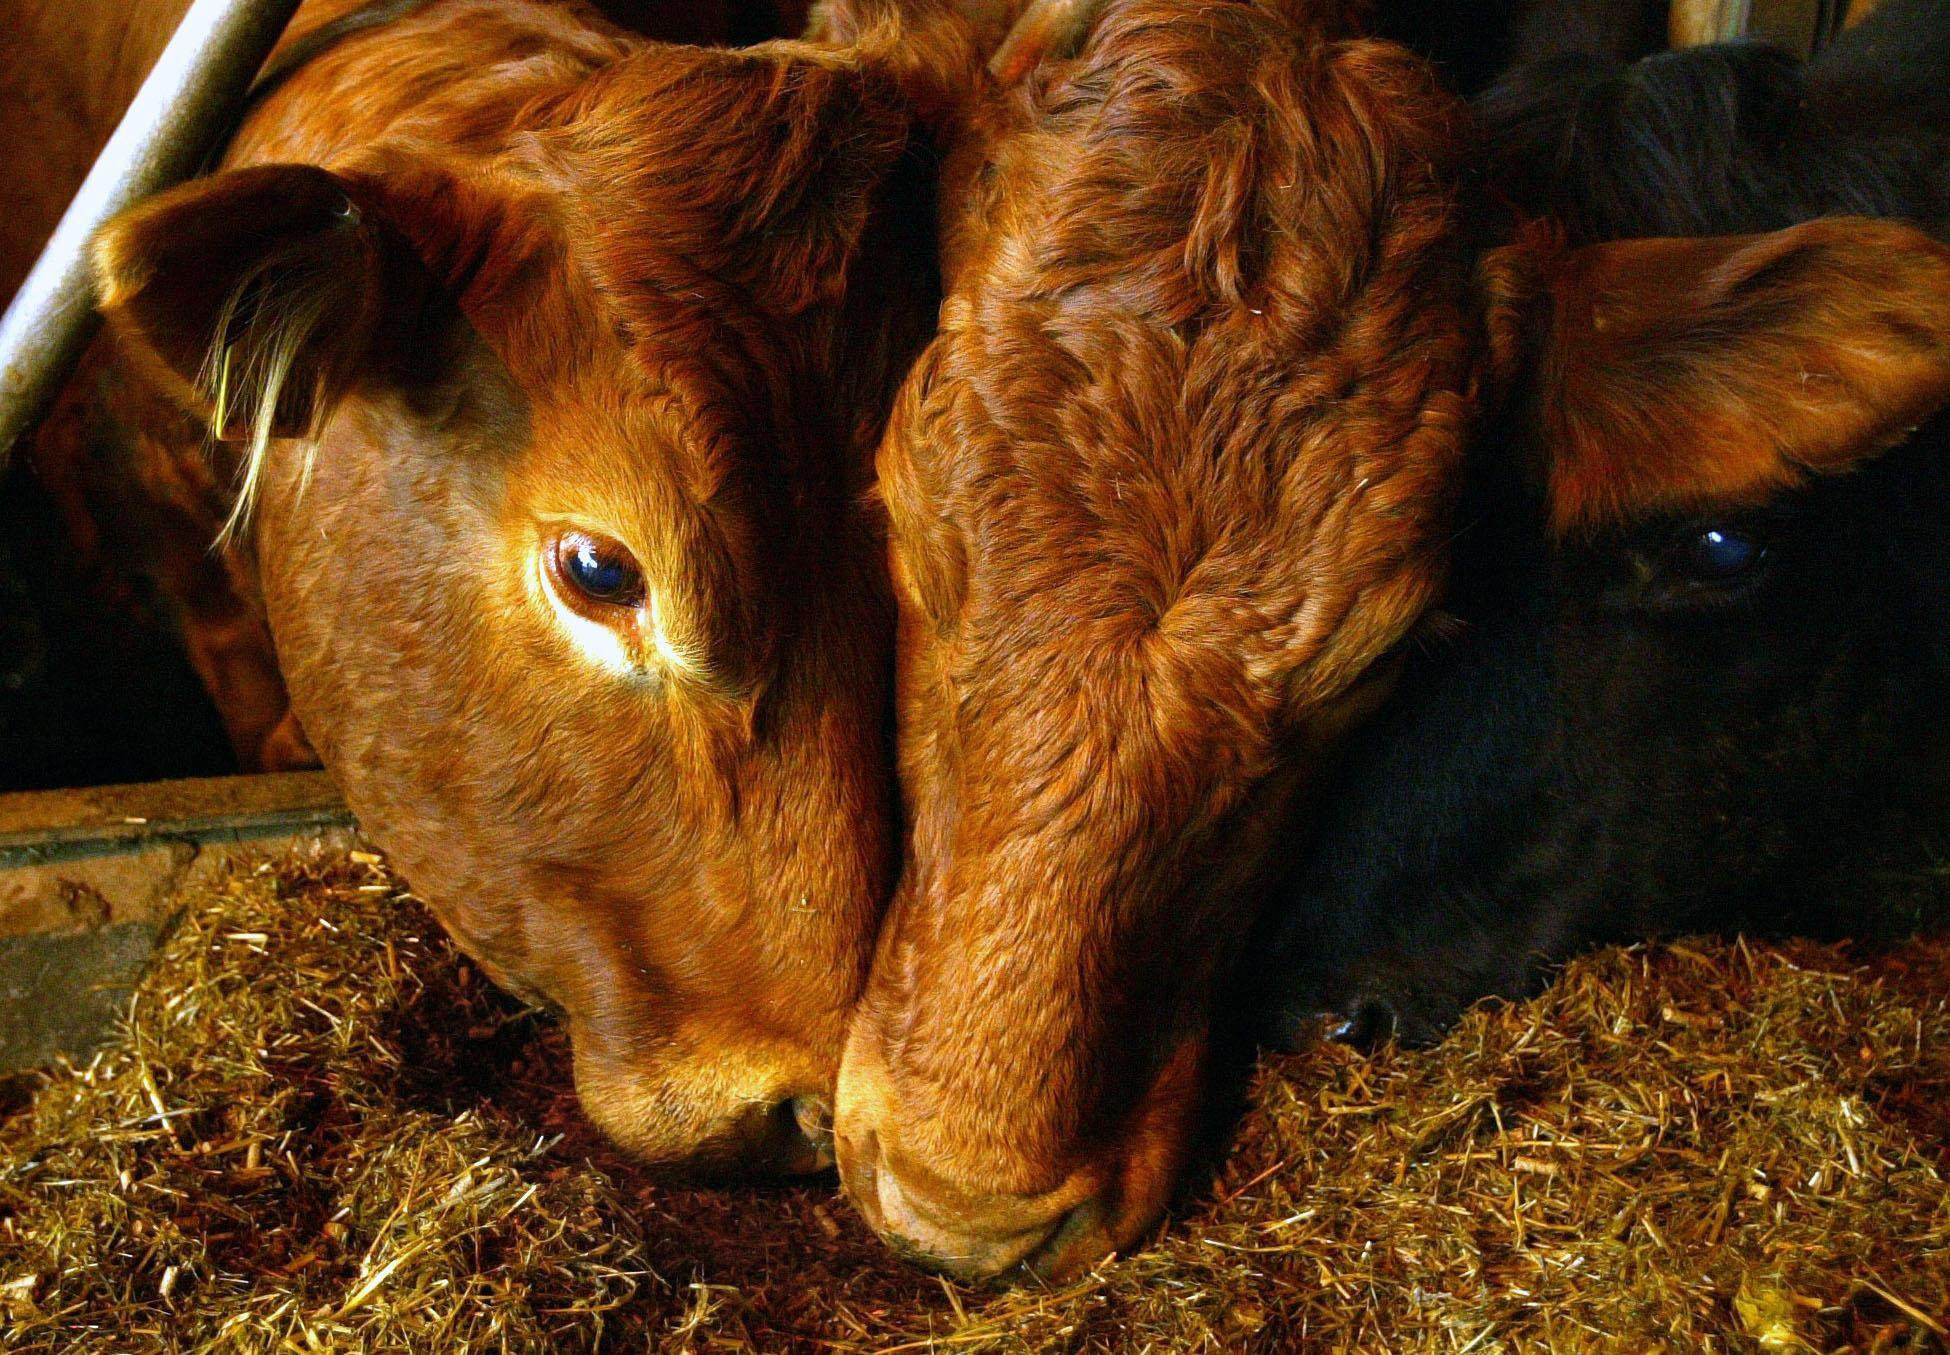 Vets are concerned that Brexit could compromise livestock disease surveillance